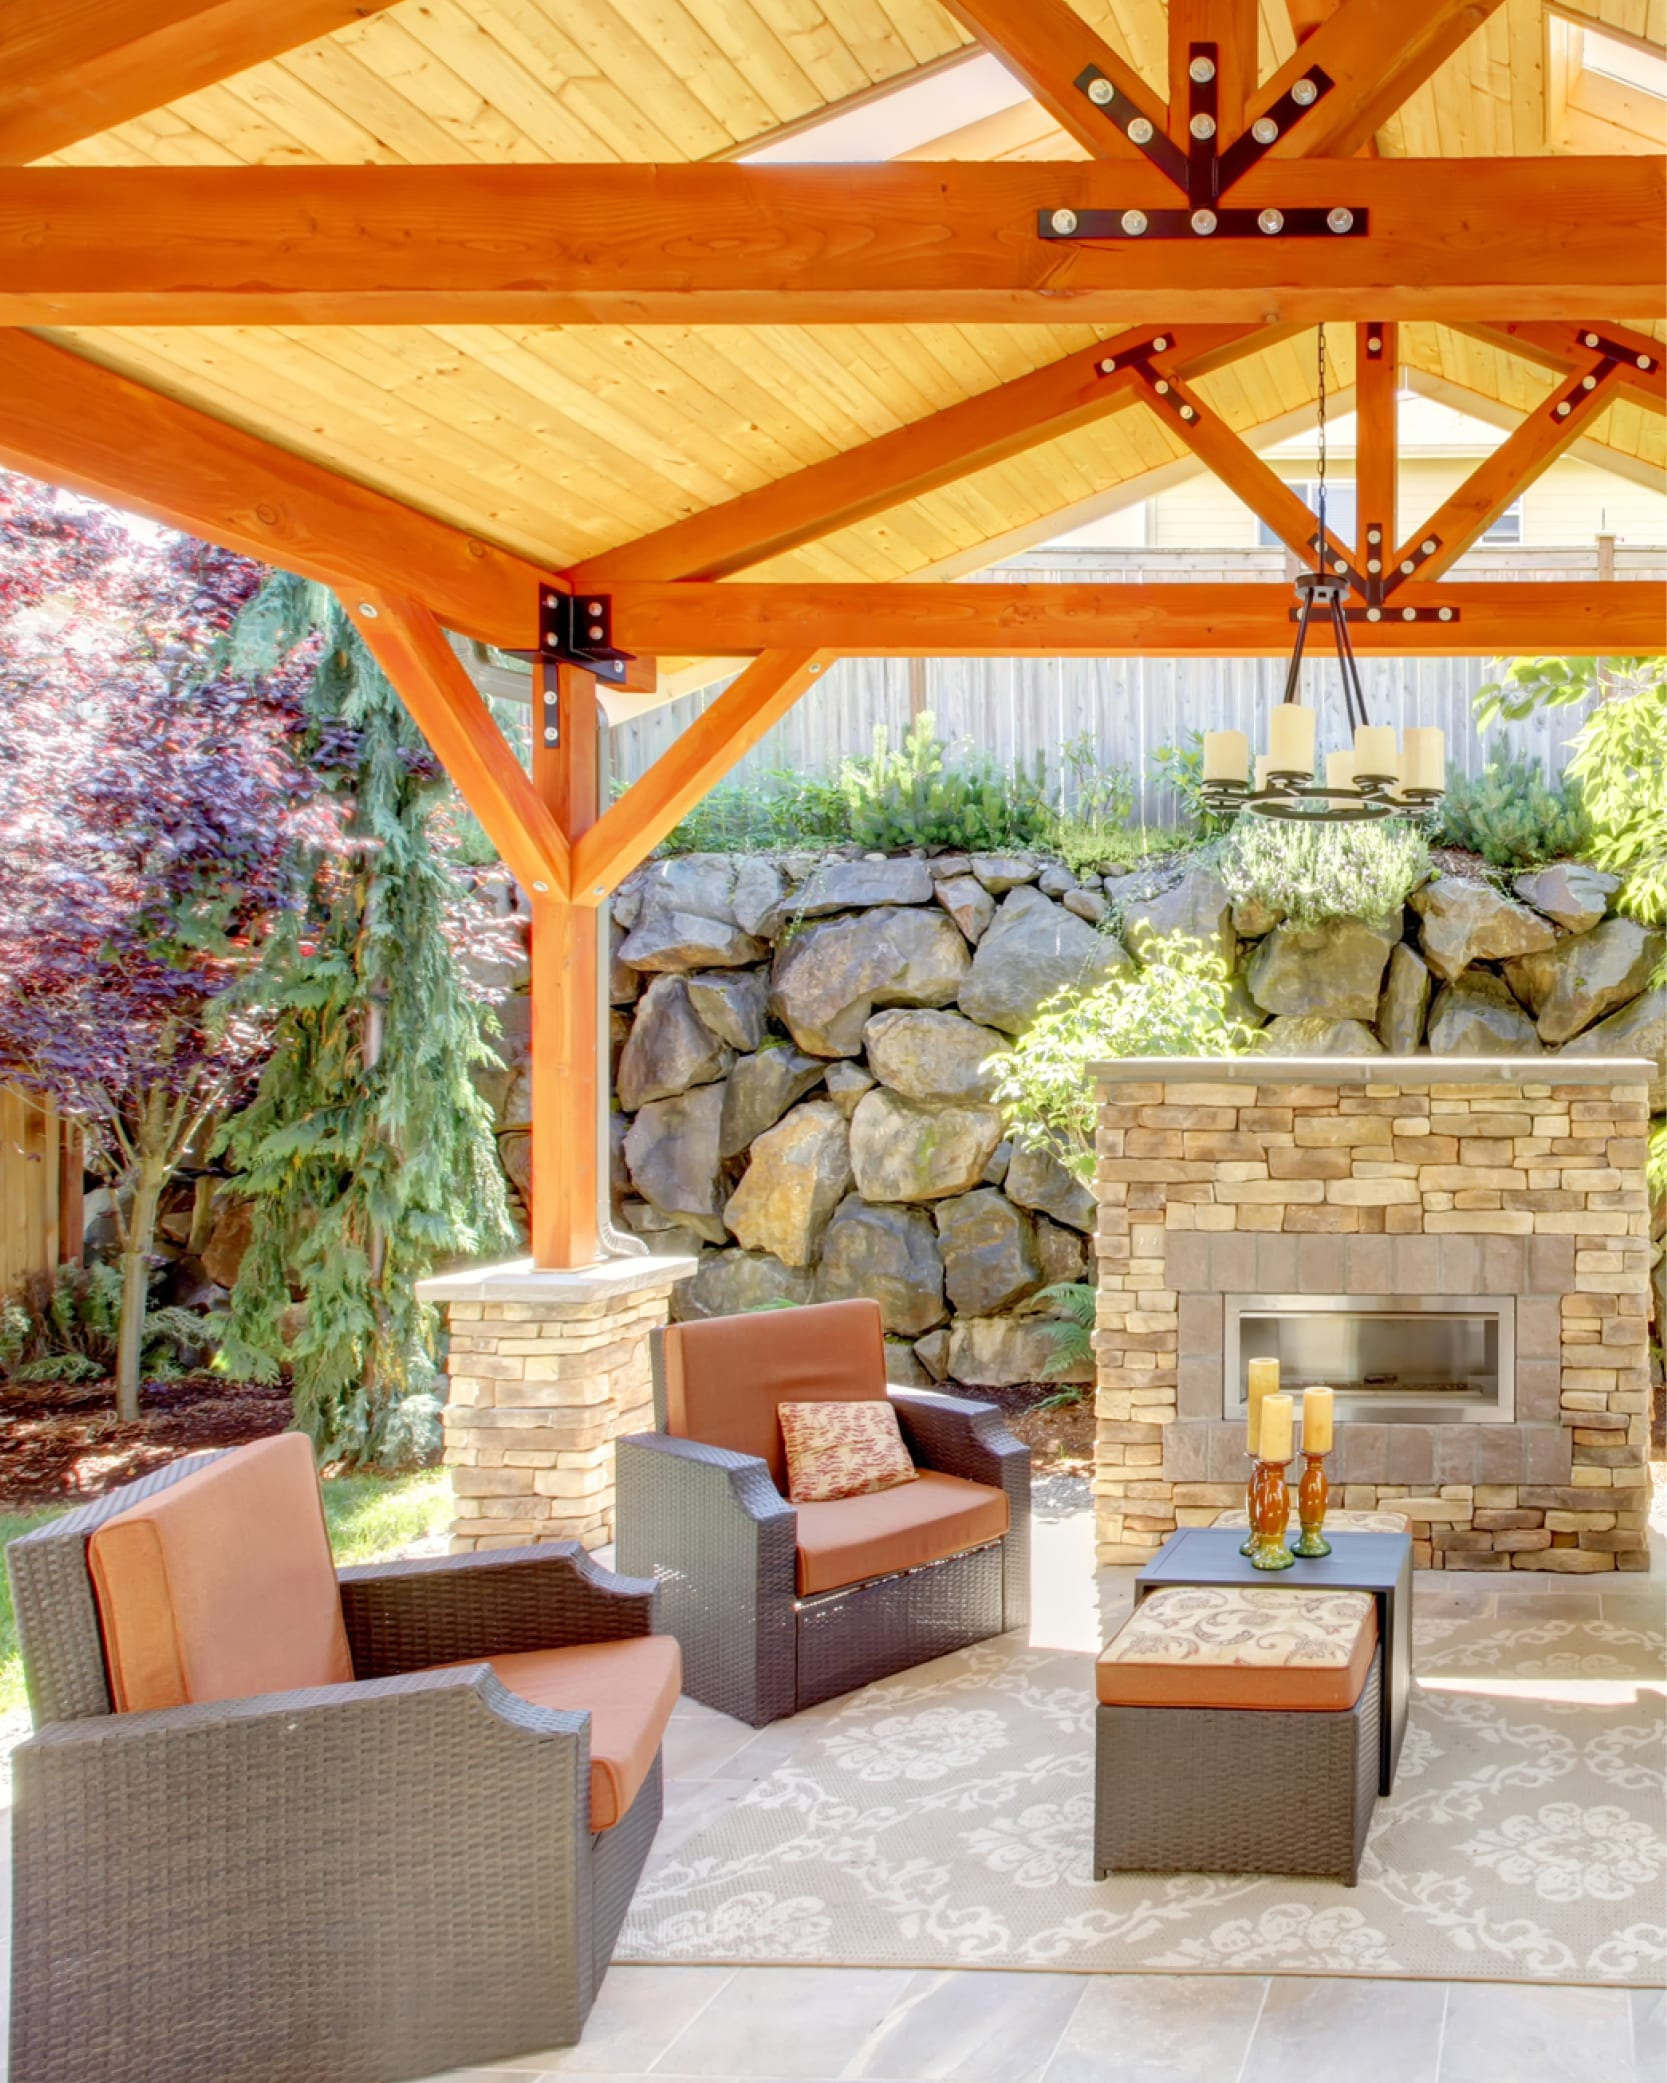 A Covered Patio - Your New Backyard Retreat! - All Star ... on Backyard Patios  id=89237